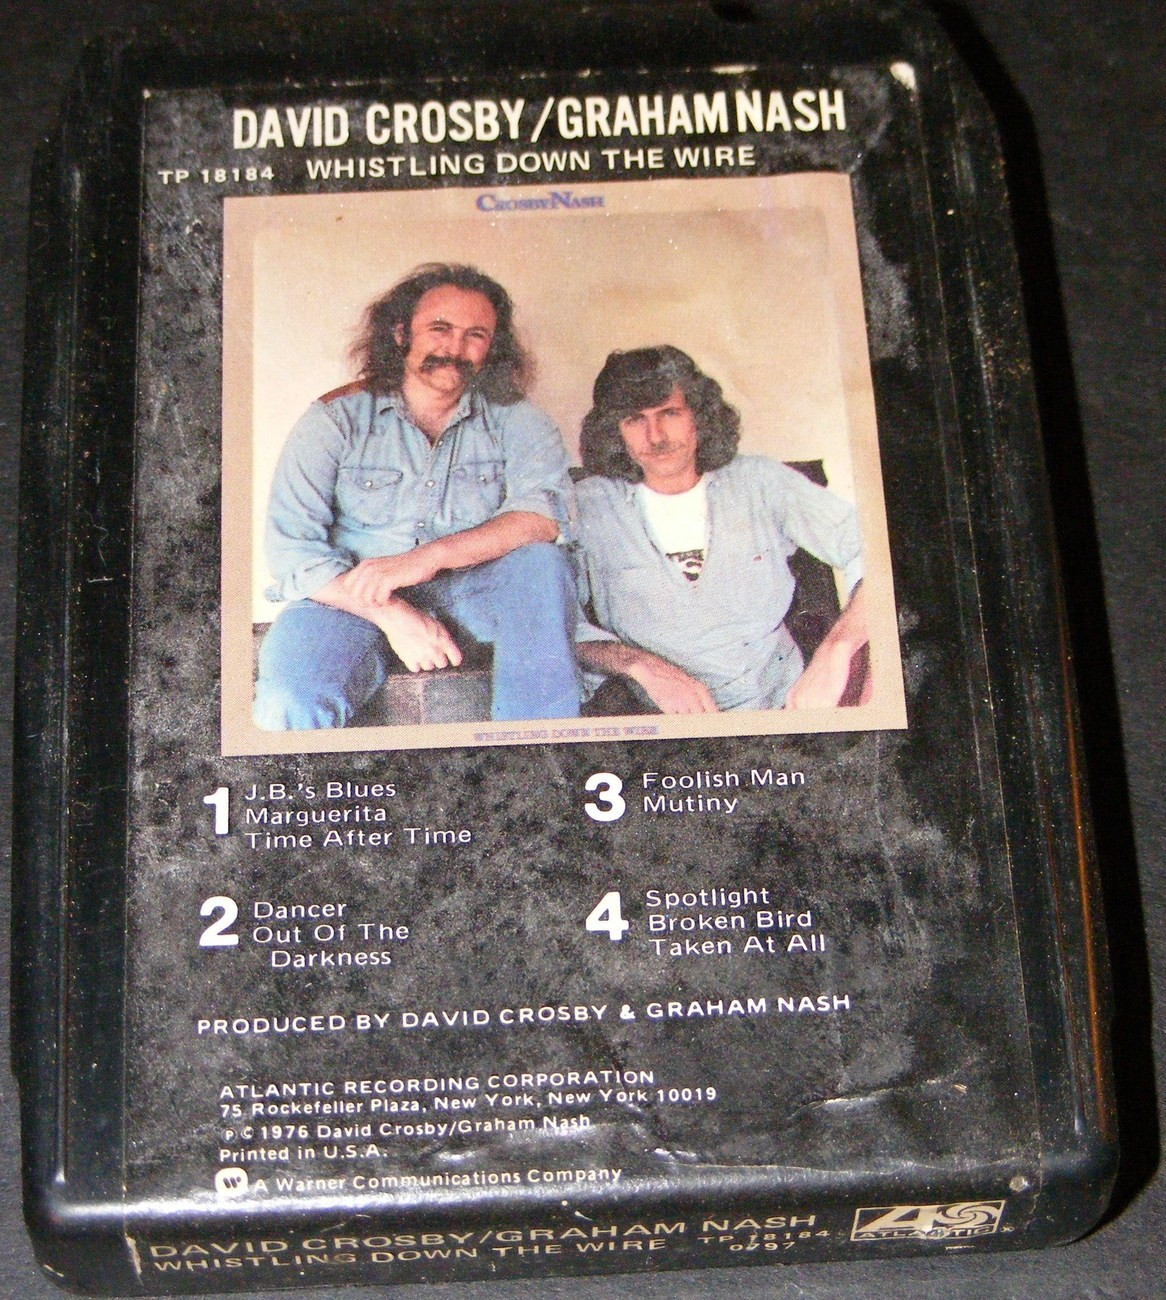 David Crosby & Graham Nash Whistling Down the Wire 8 Track